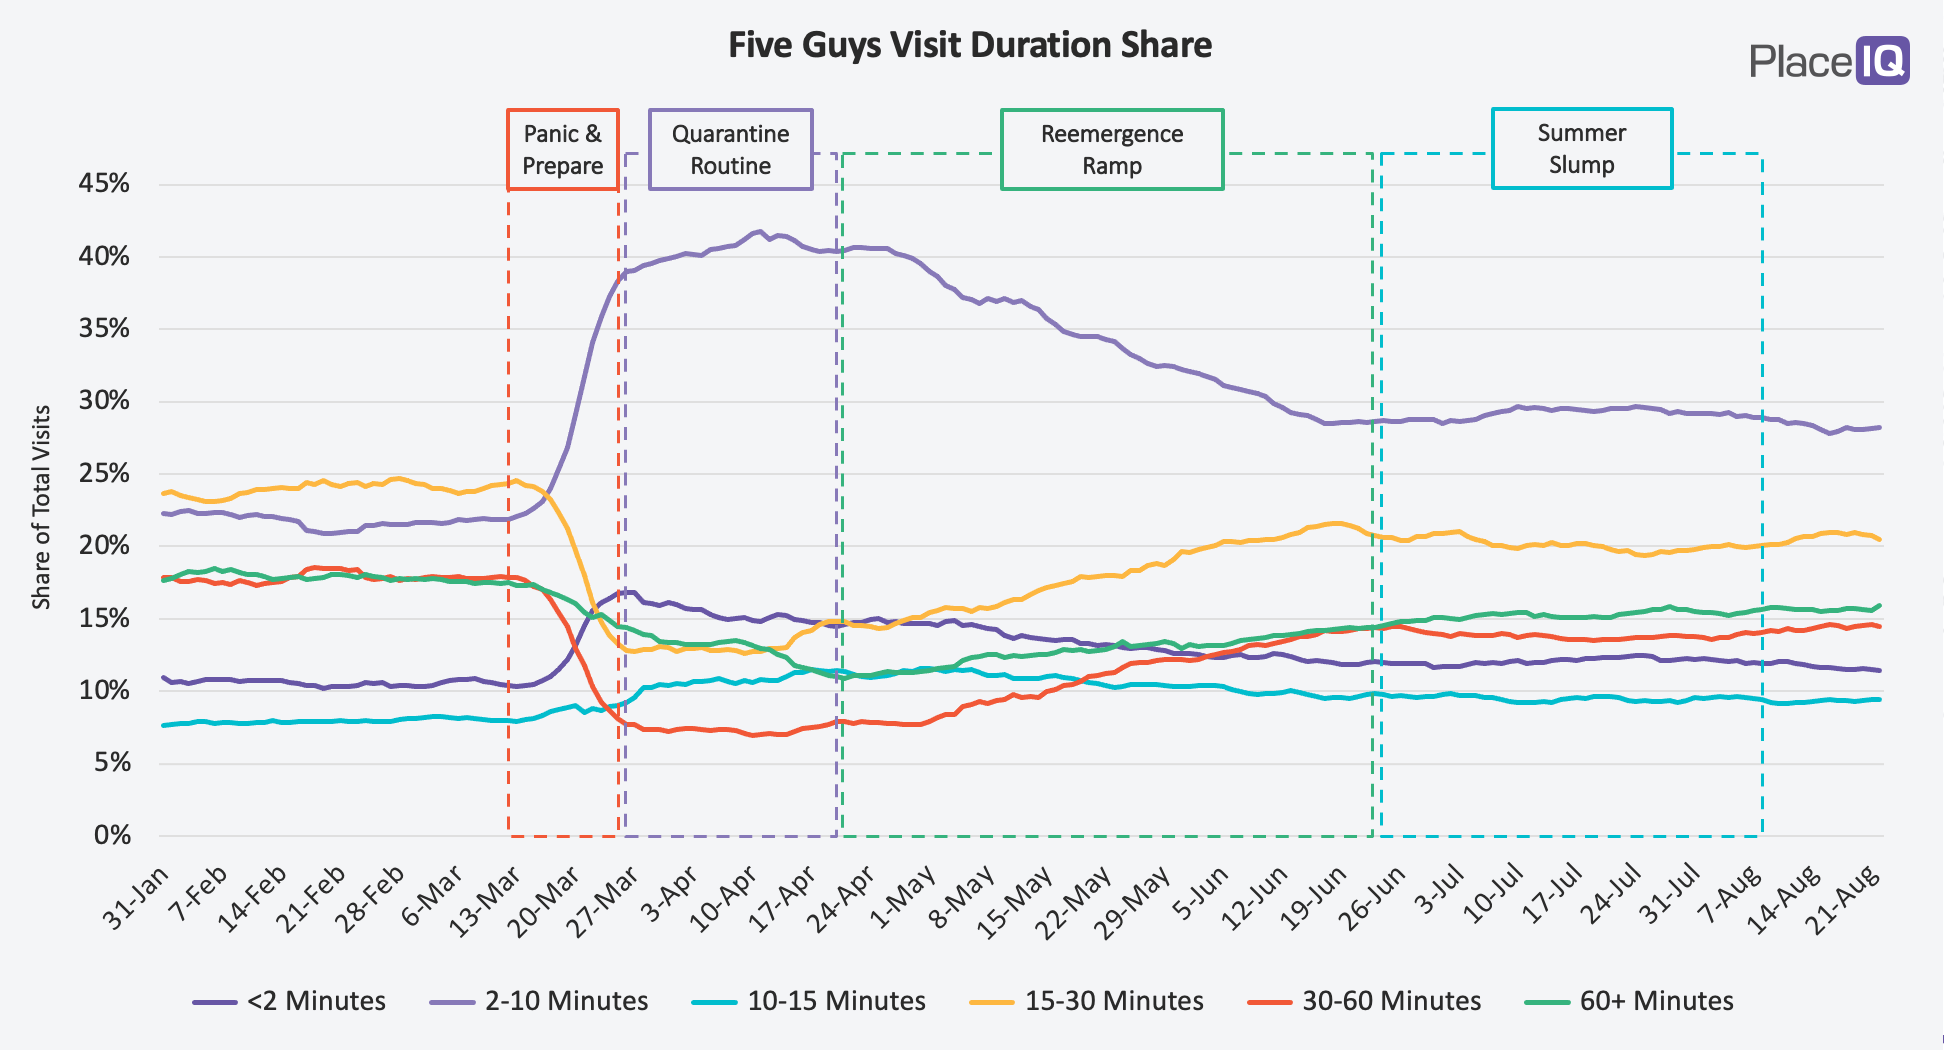 CHART: Five Guys Visit Duration Share